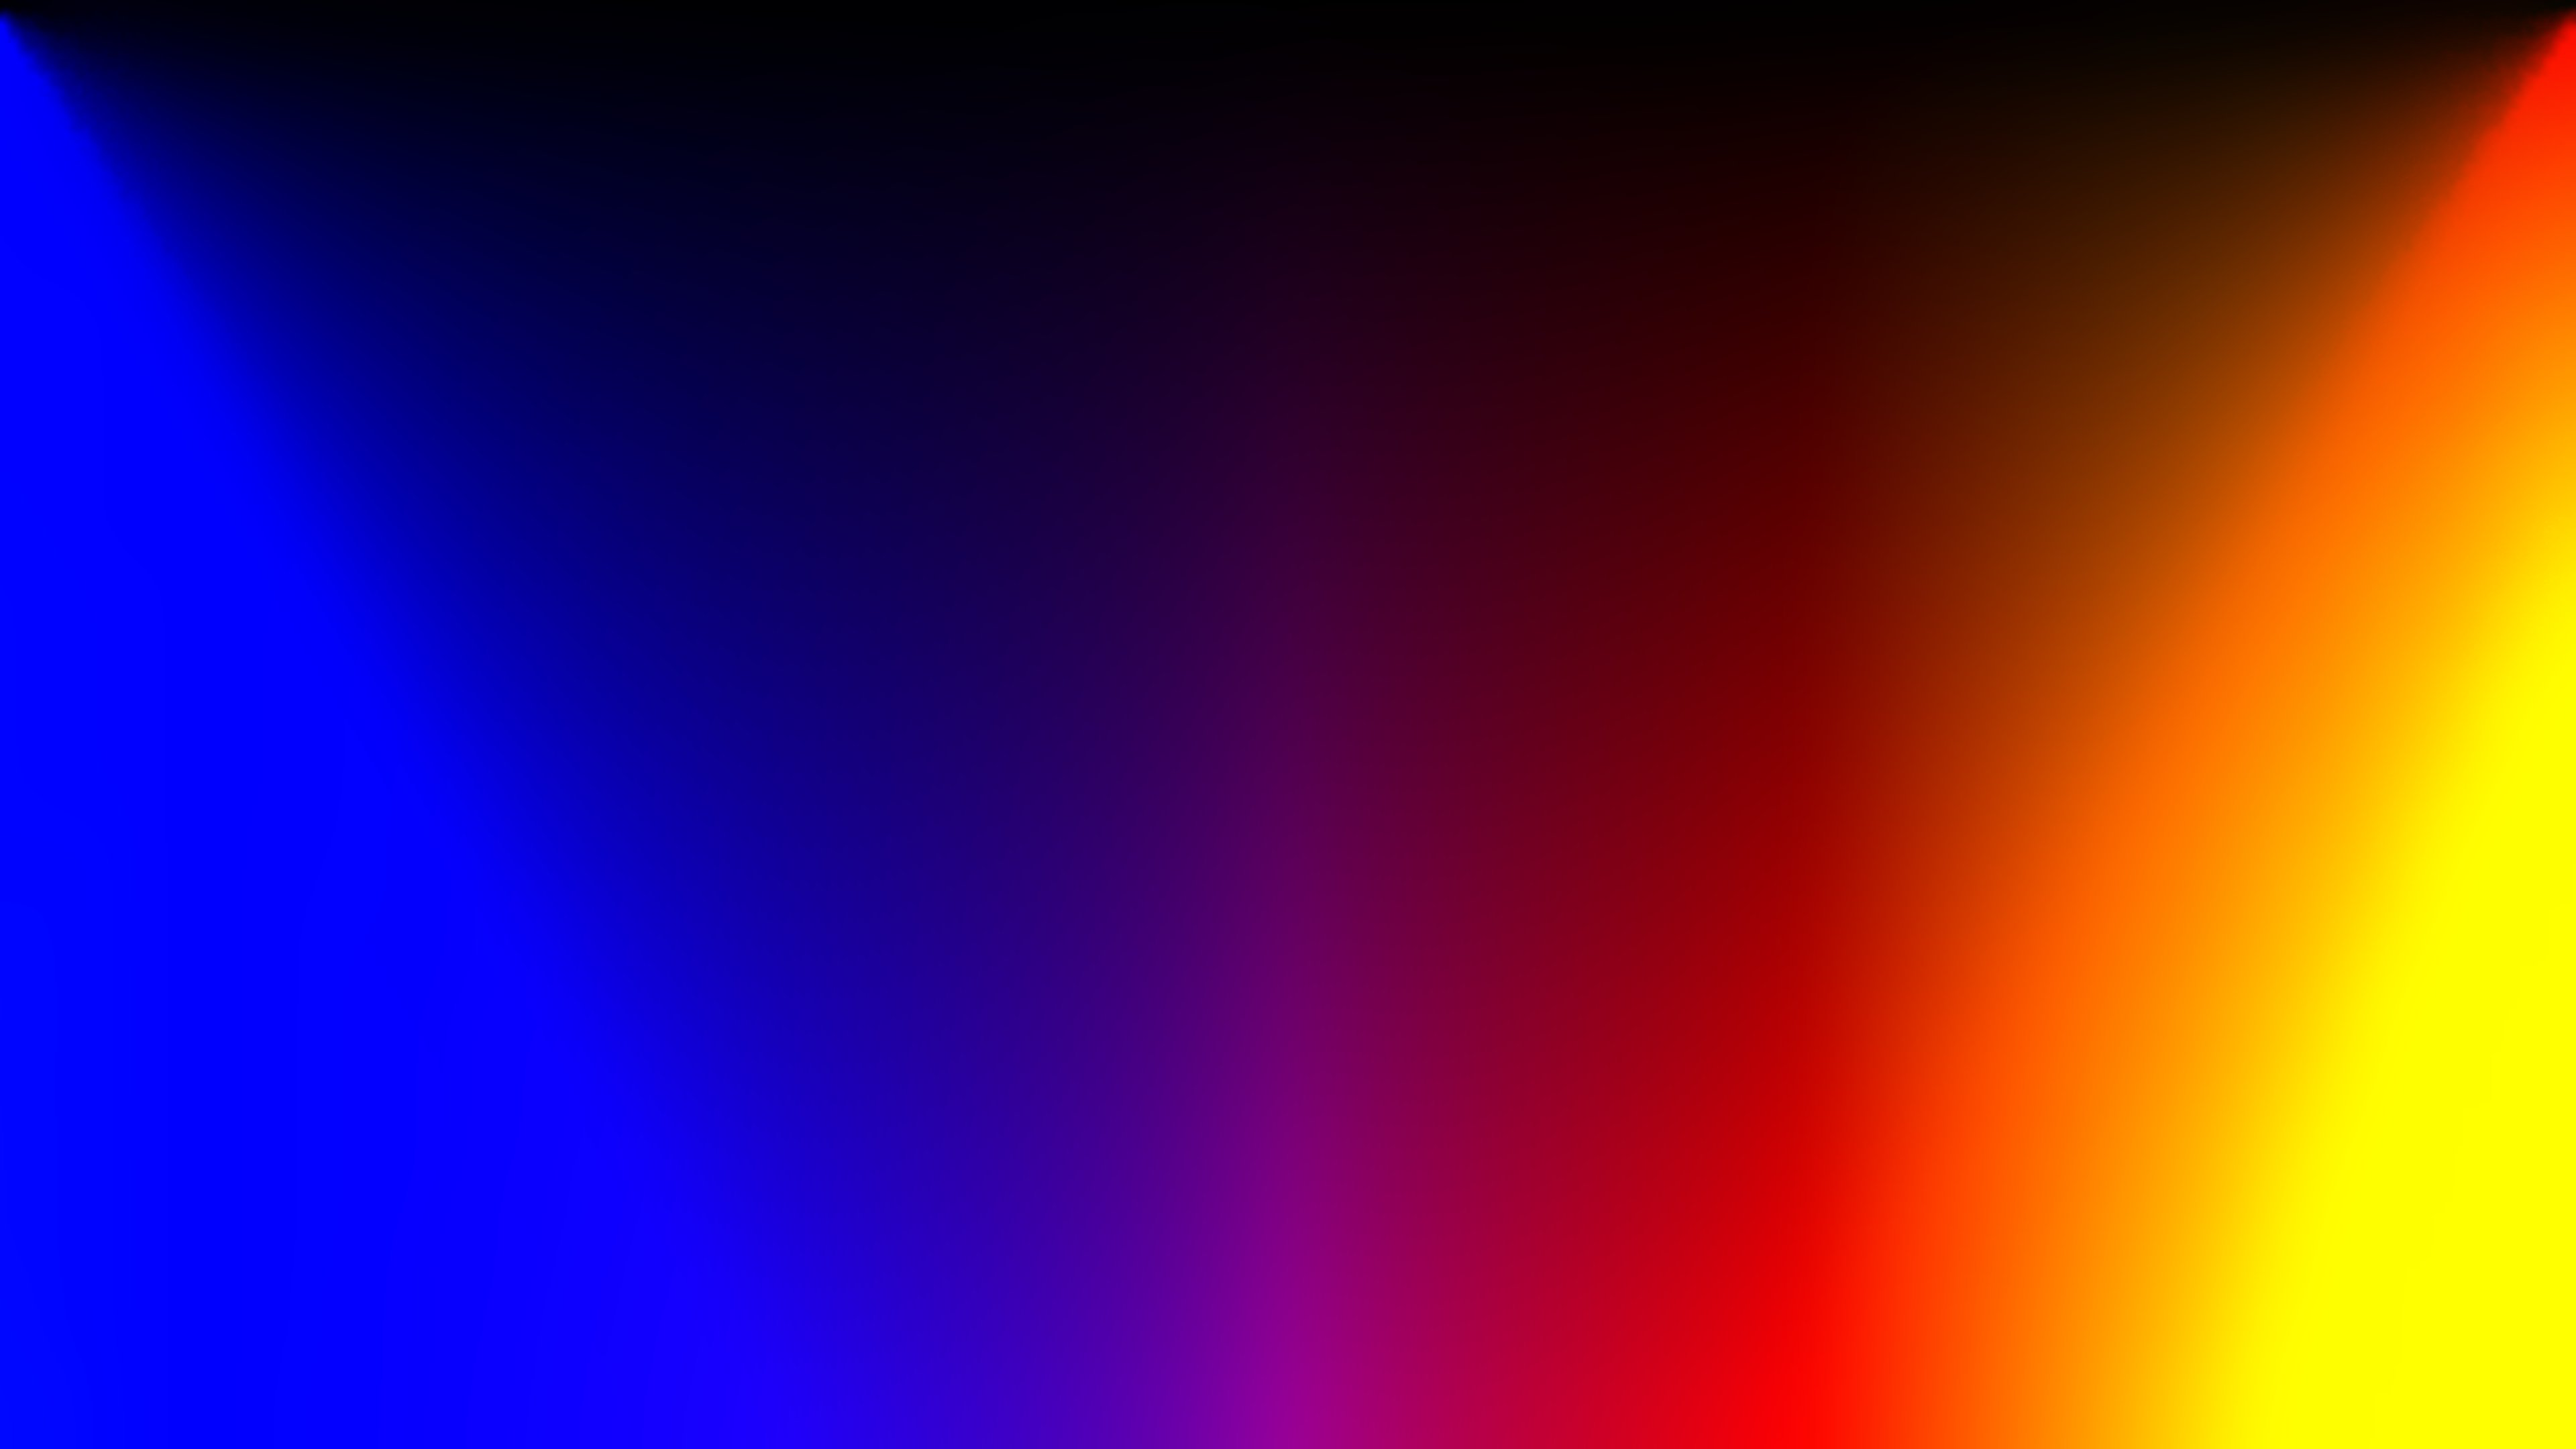 colors colorful abstract blue purple red orange yellow